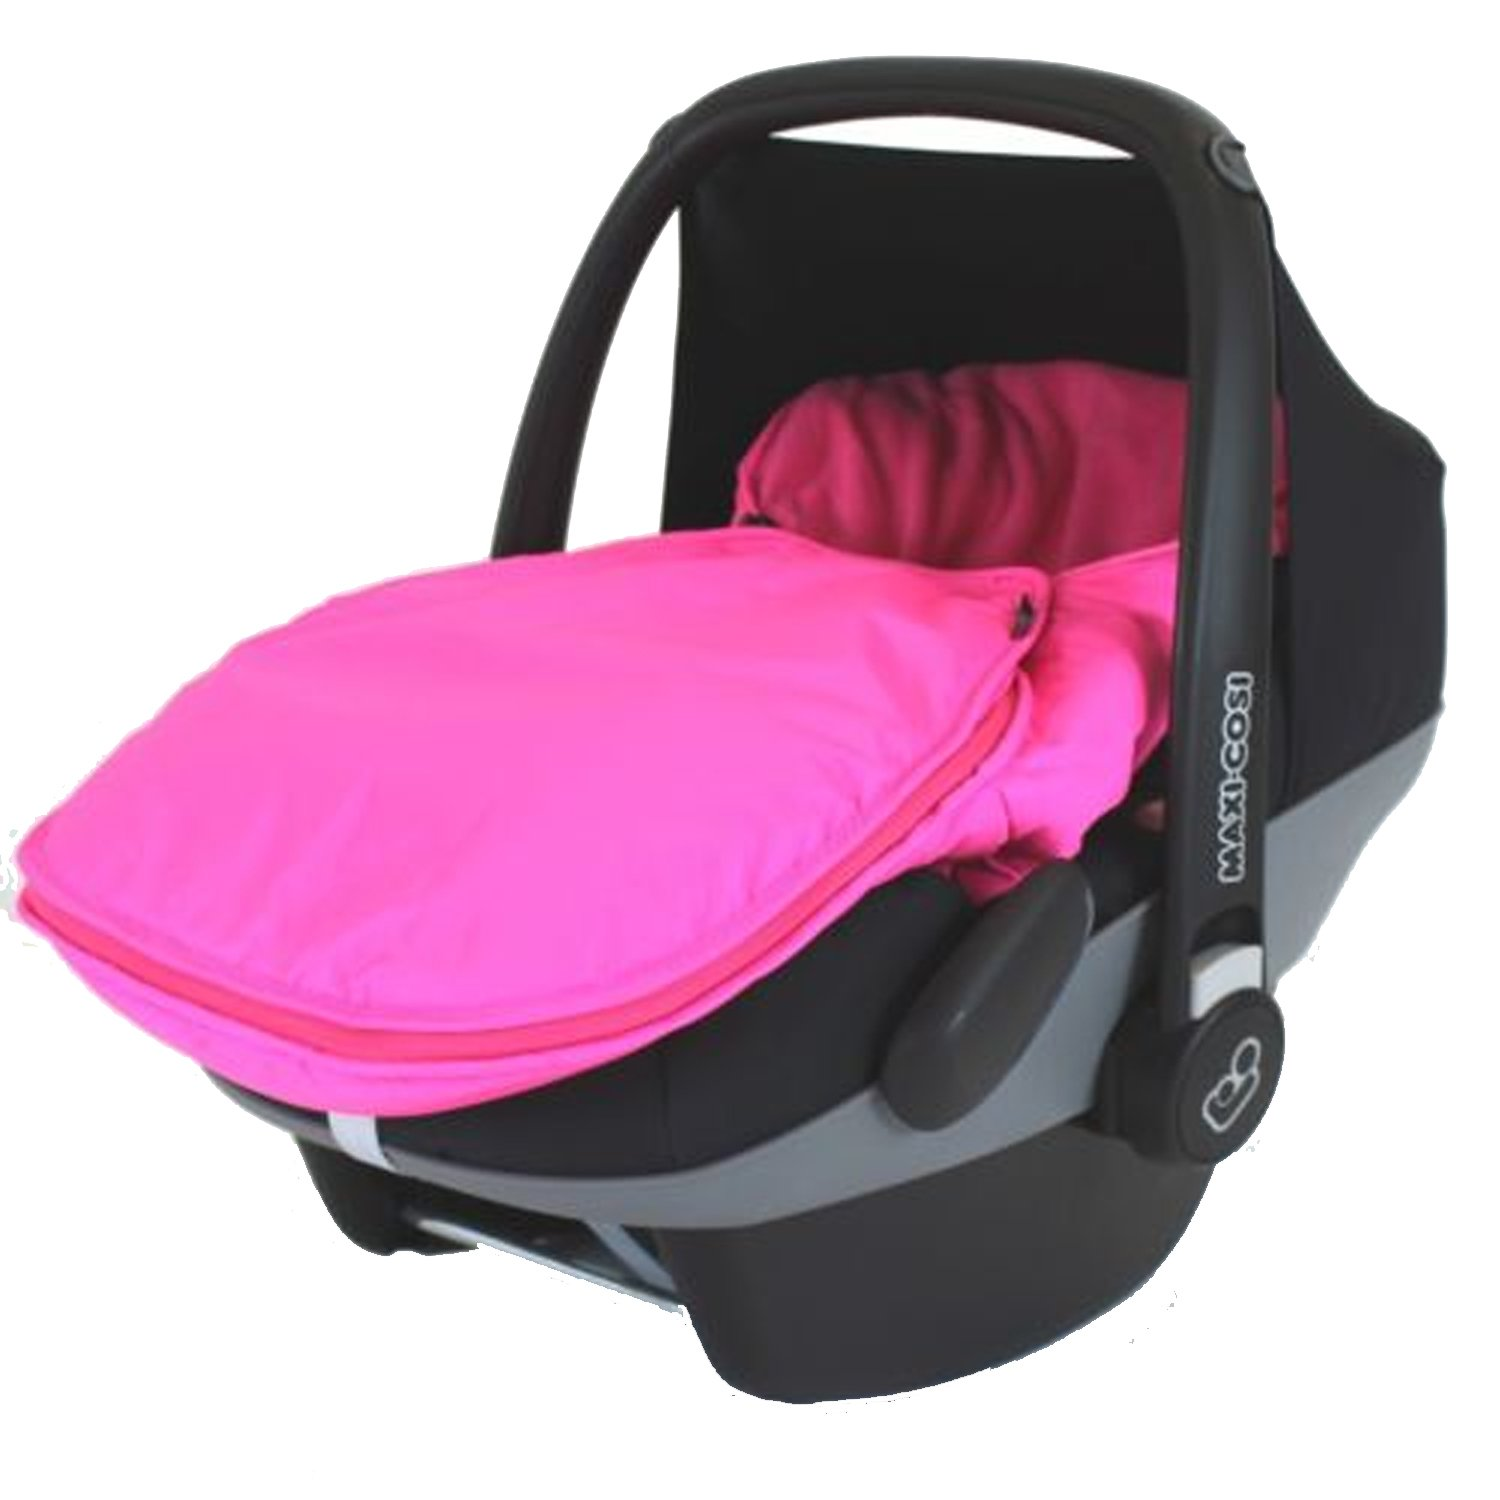 Carseat Footmuff To Fit Maxi Cosi Cabrio - Pink Baby Travel